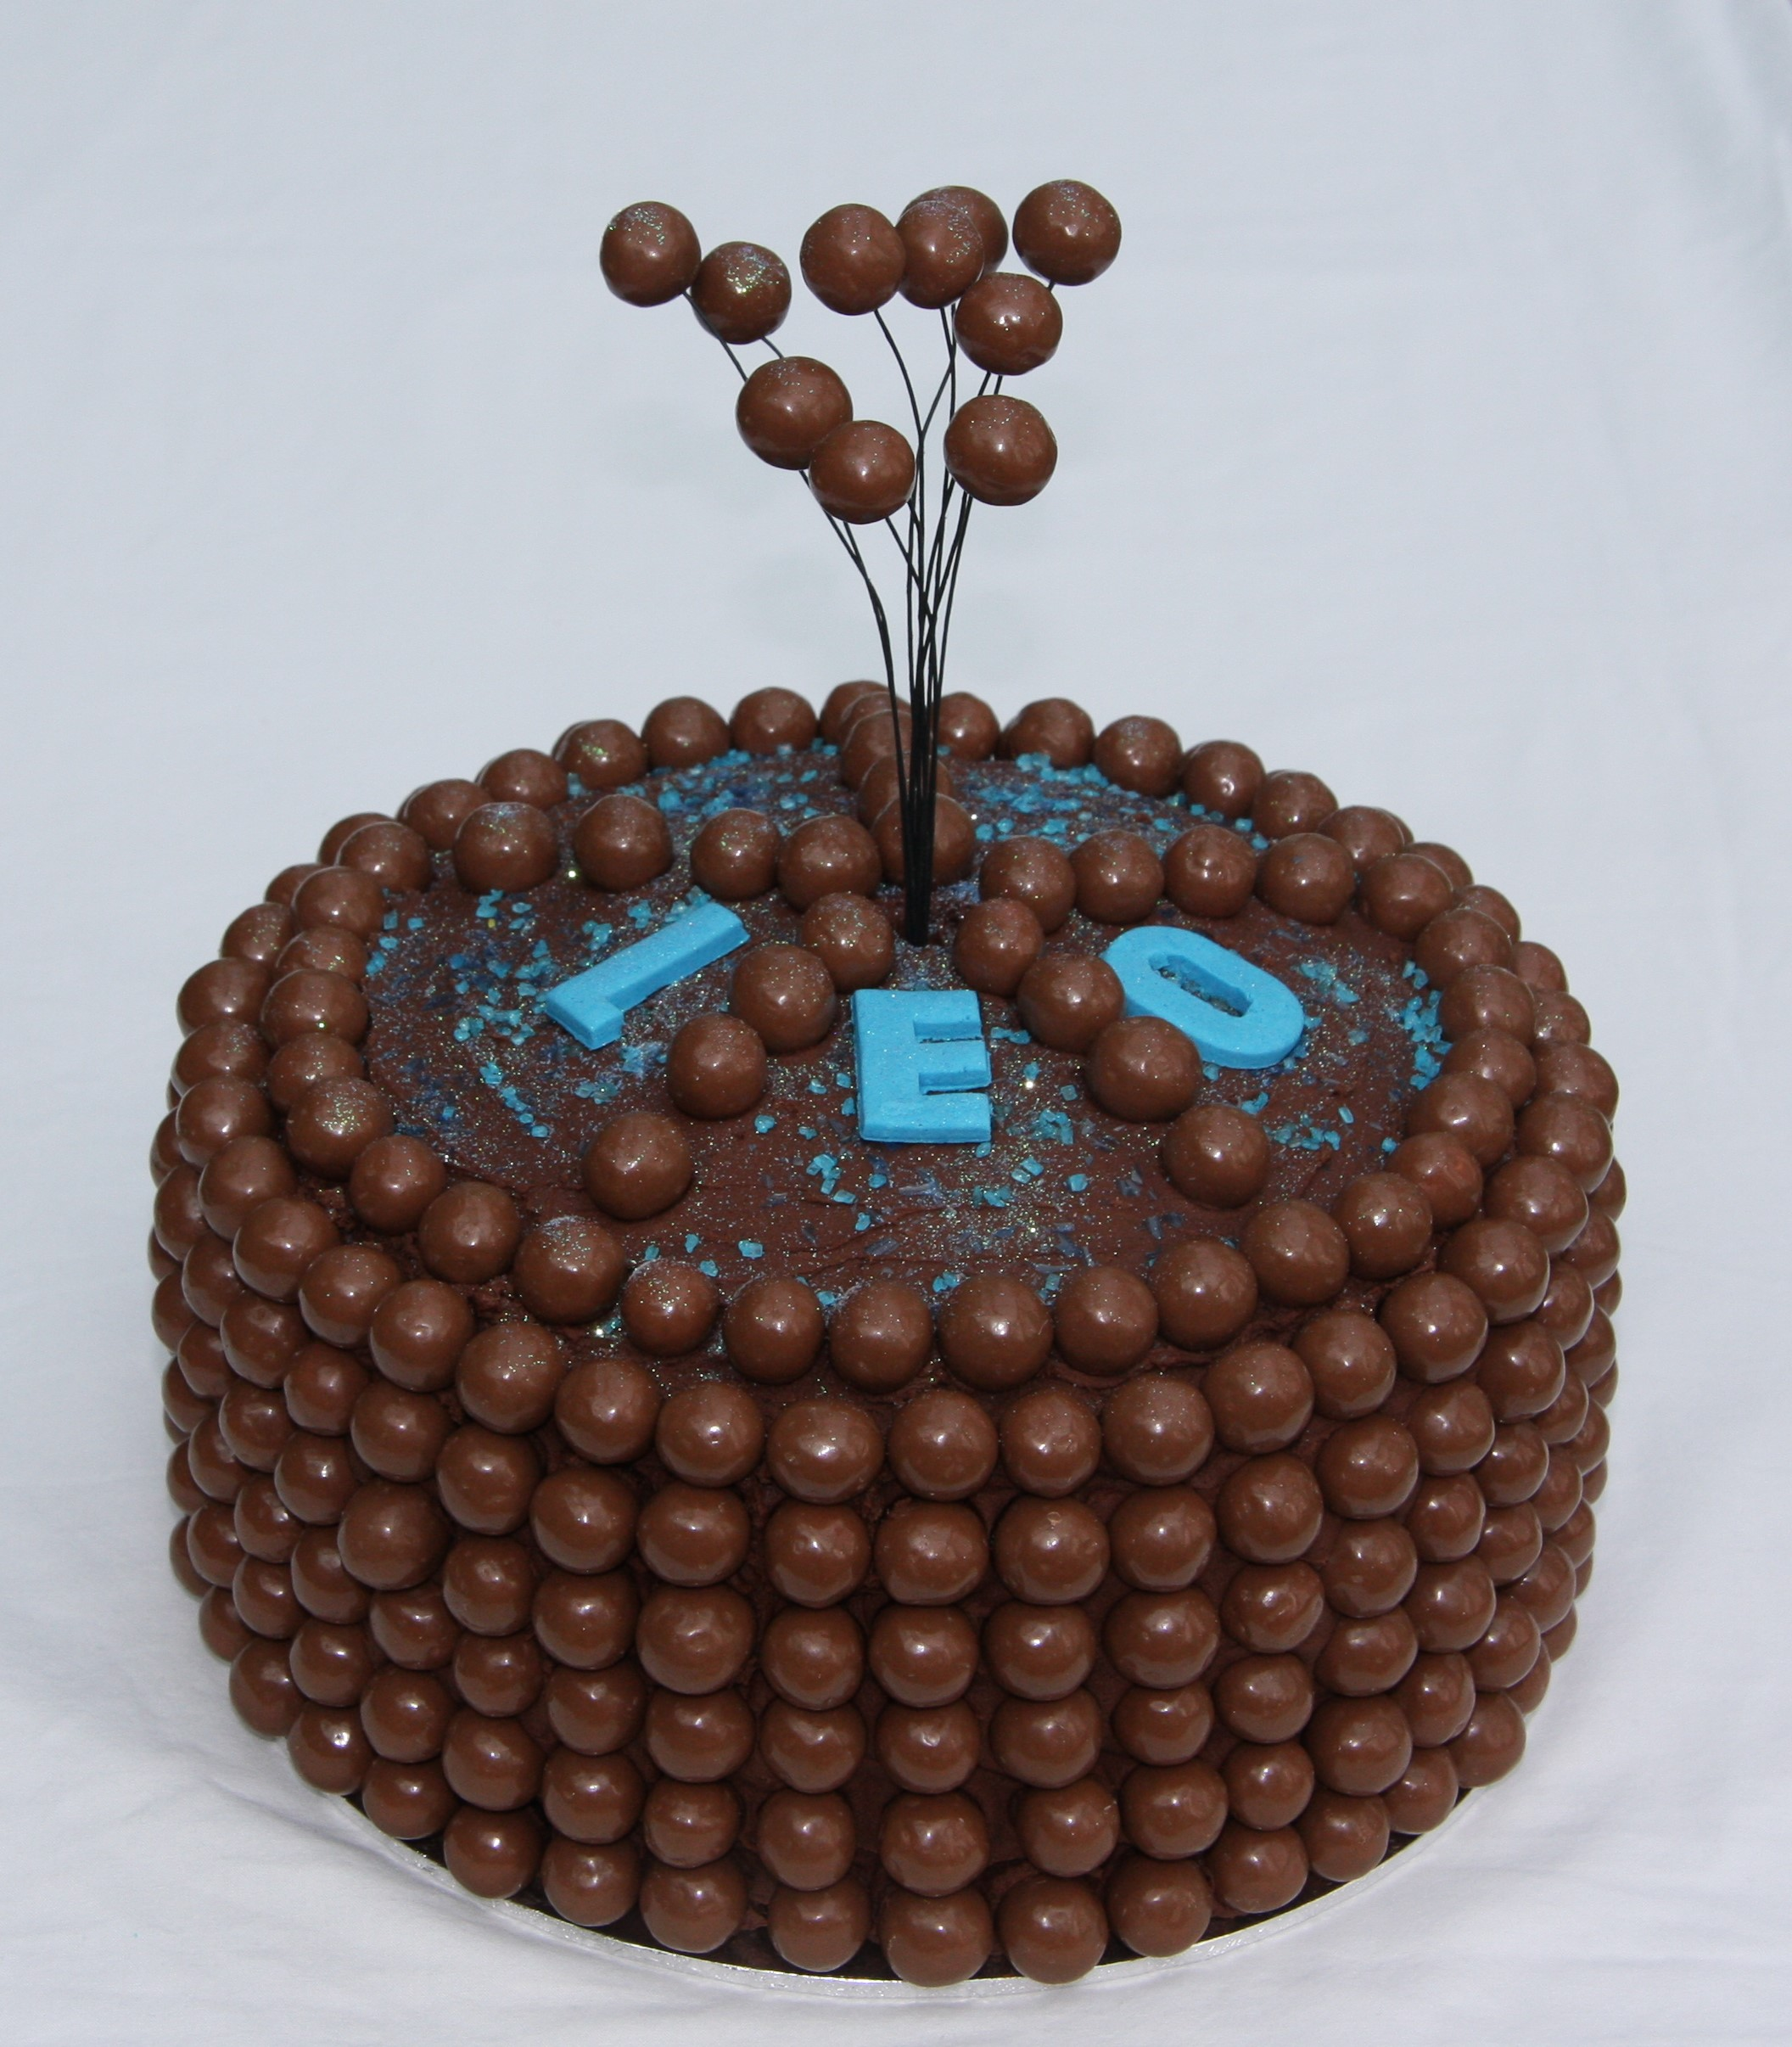 chocolate birthday cake chocolate birthday cakes top tips for decorating with 2809